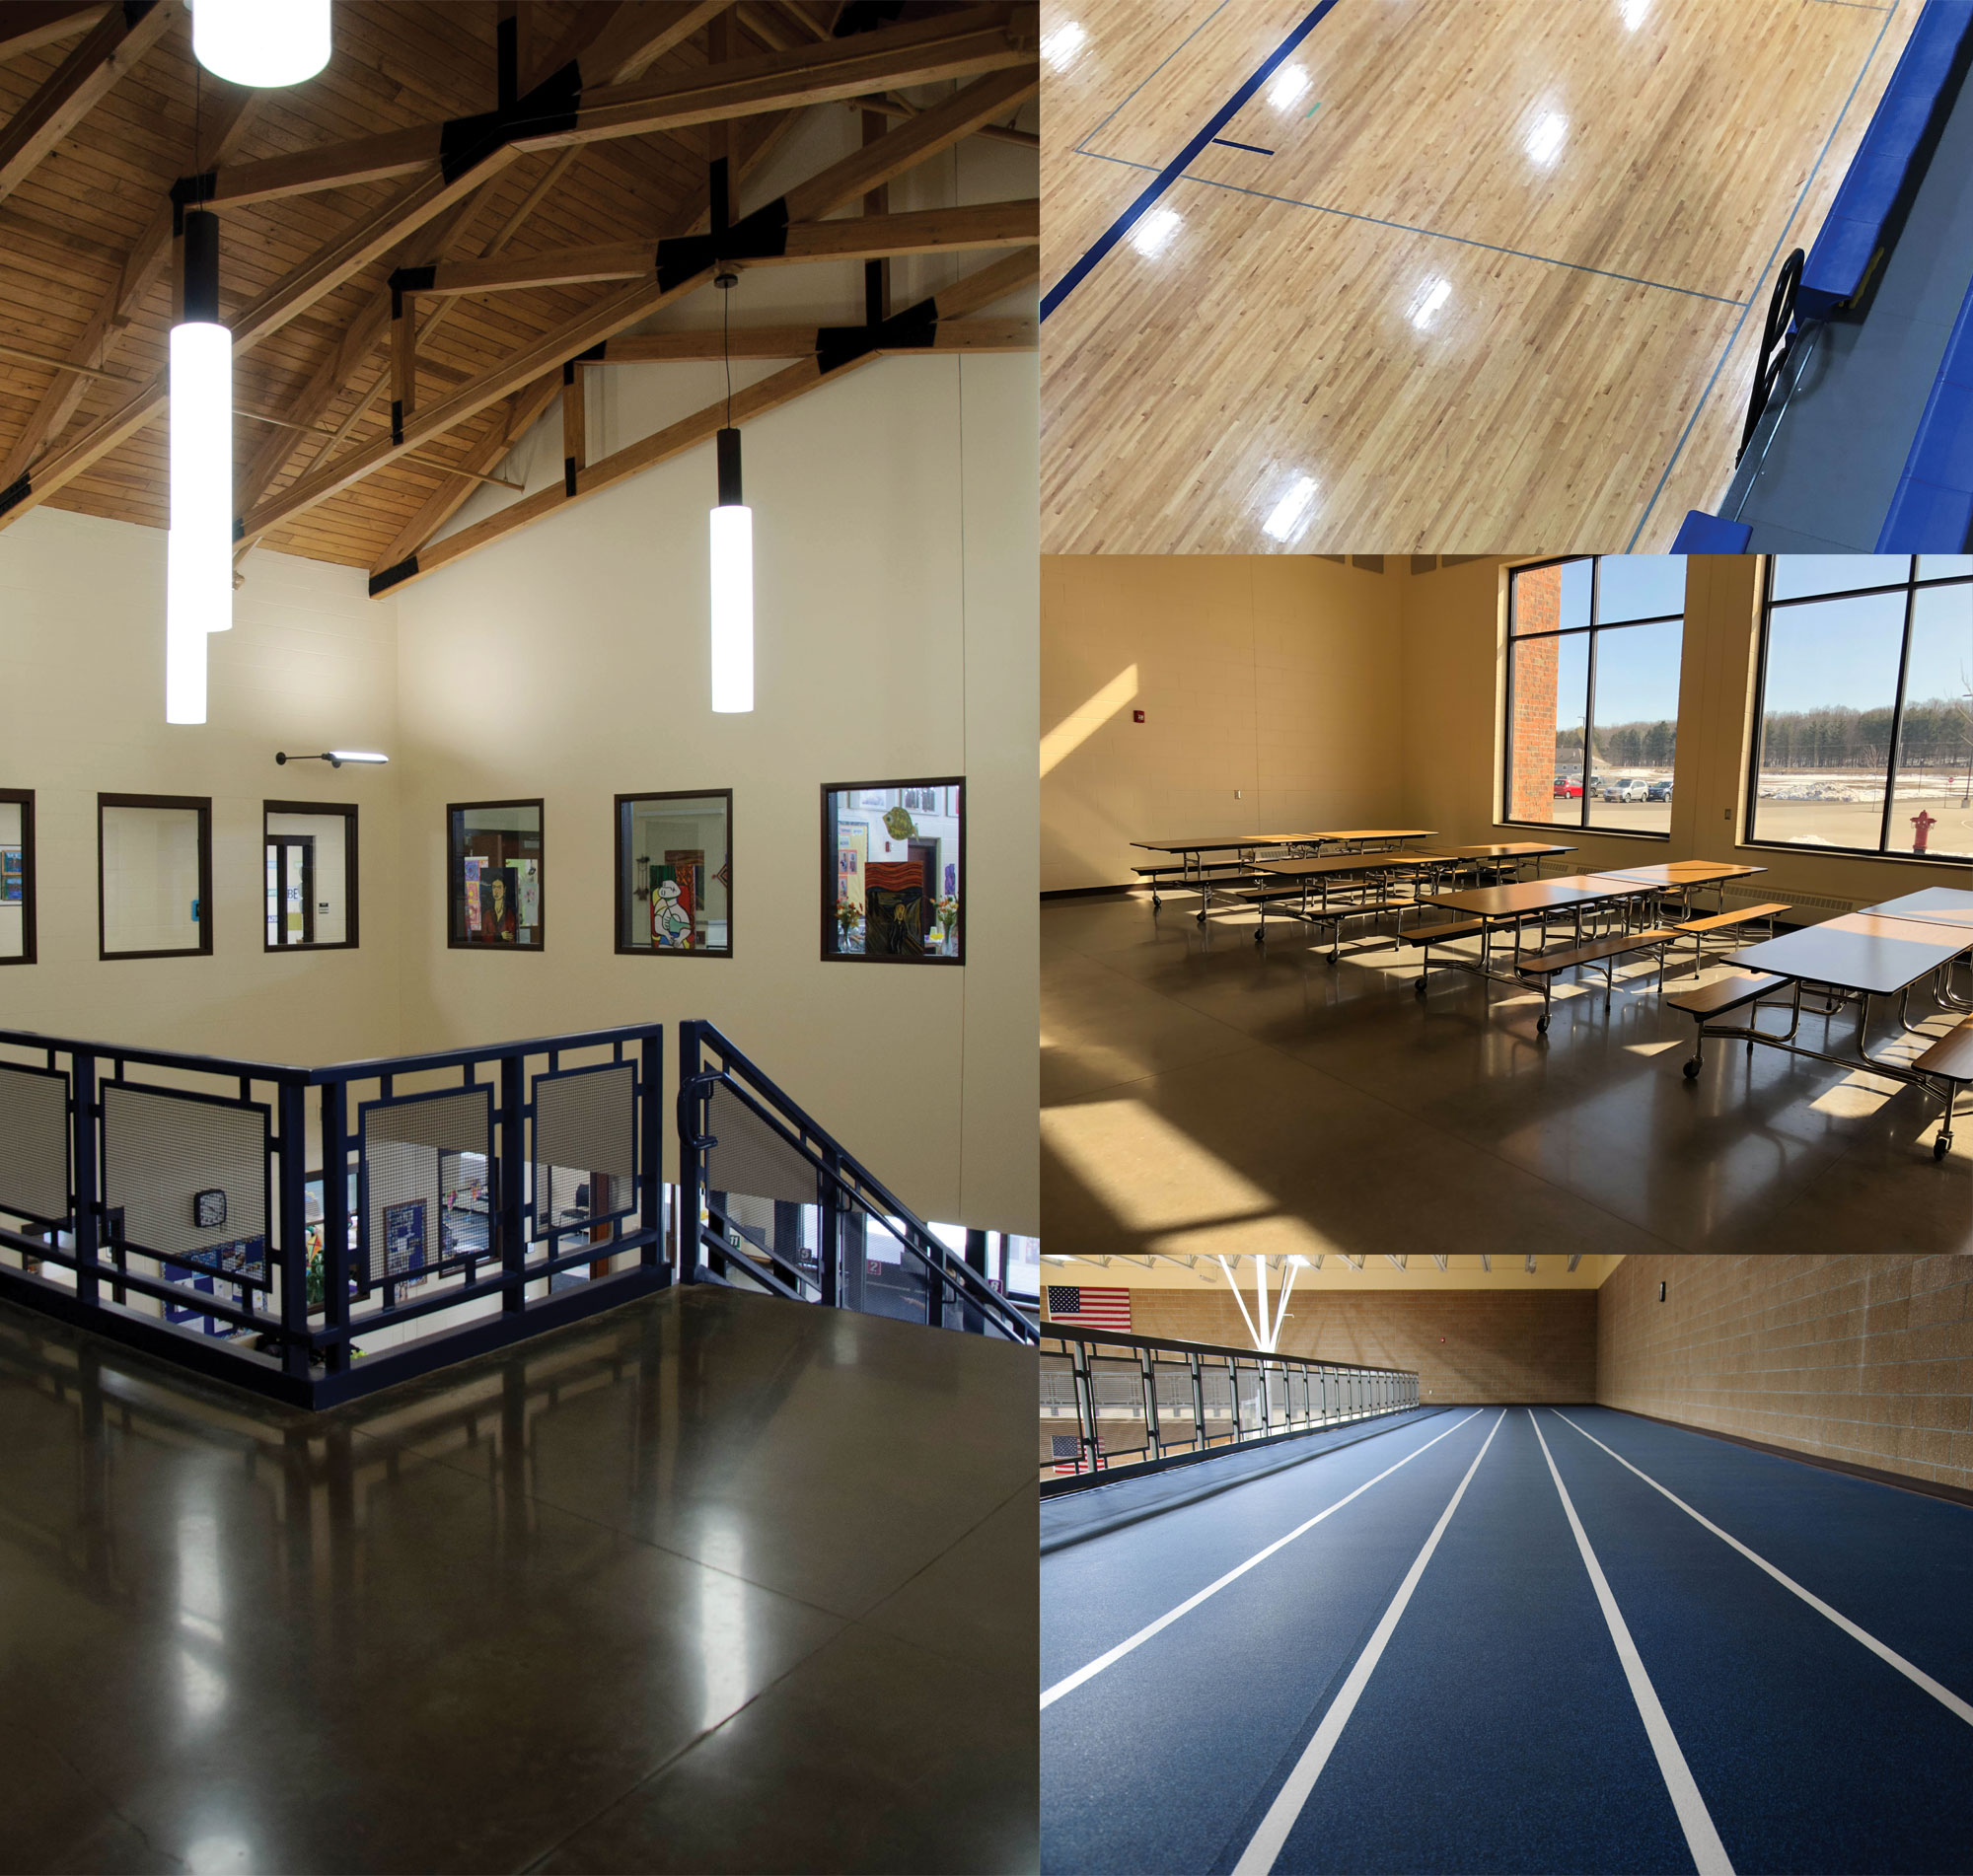 Interior of Cameron Middle School